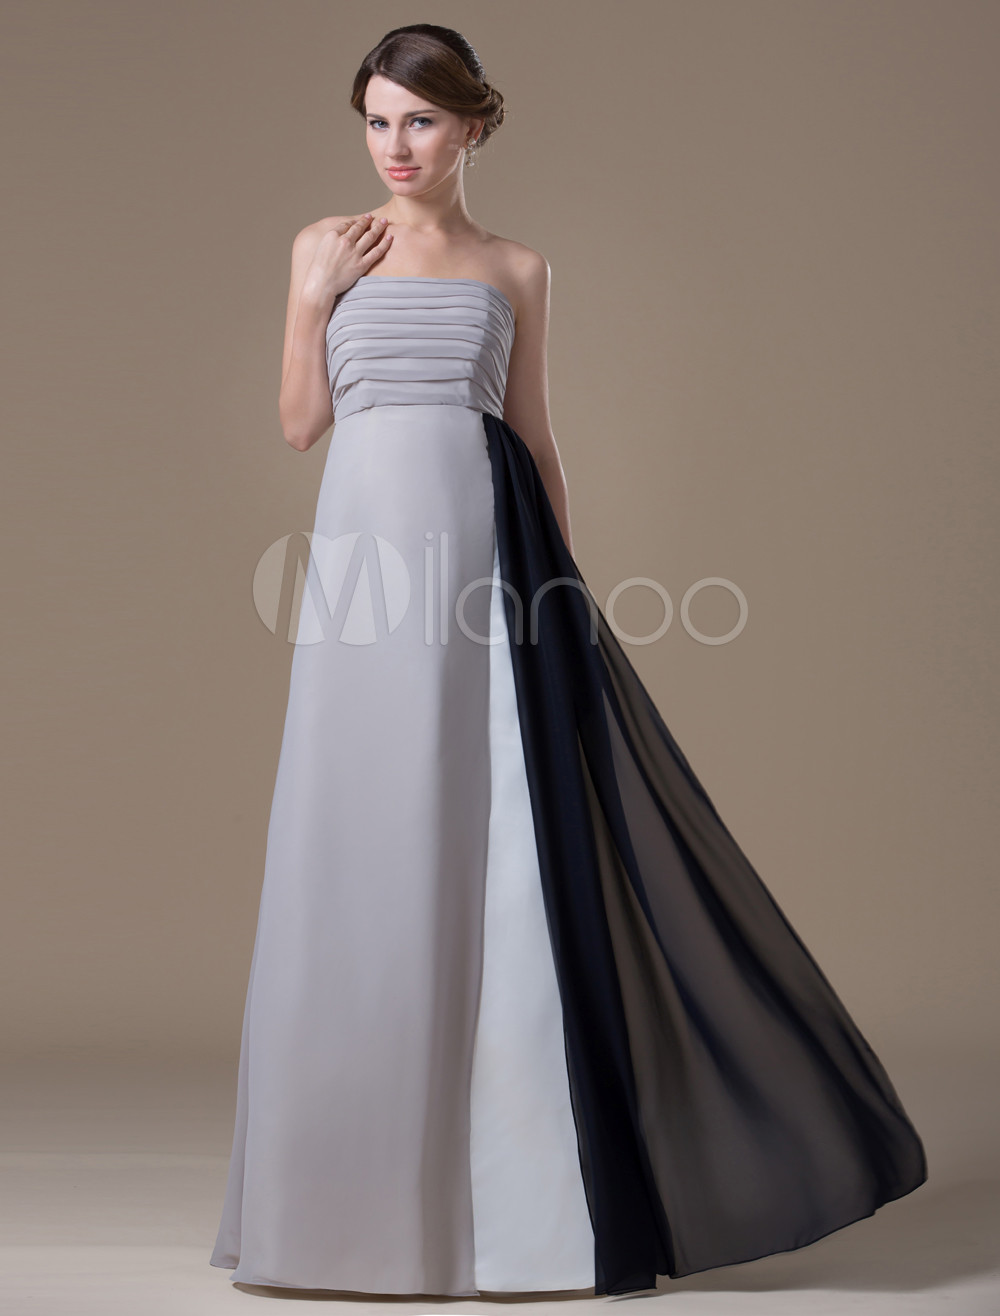 A-line Silver Chiffon Maternity Bridesmaid Dress with Empire Waist